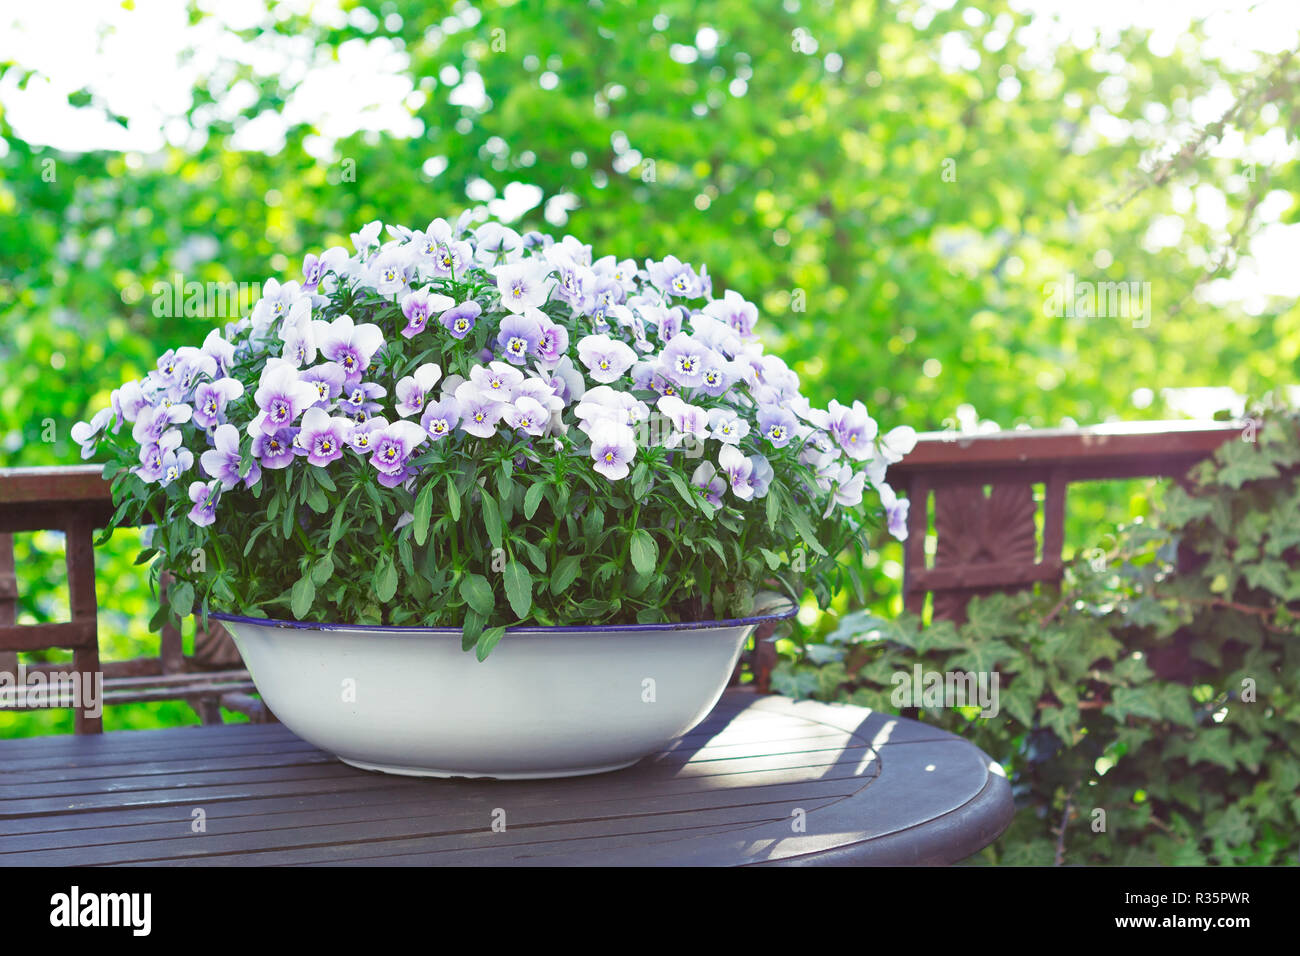 Pansy flowers in shades of lilac, violet and blue in a white vintage wash basin on a balcony table in bright sunlight, copy or text space Stock Photo